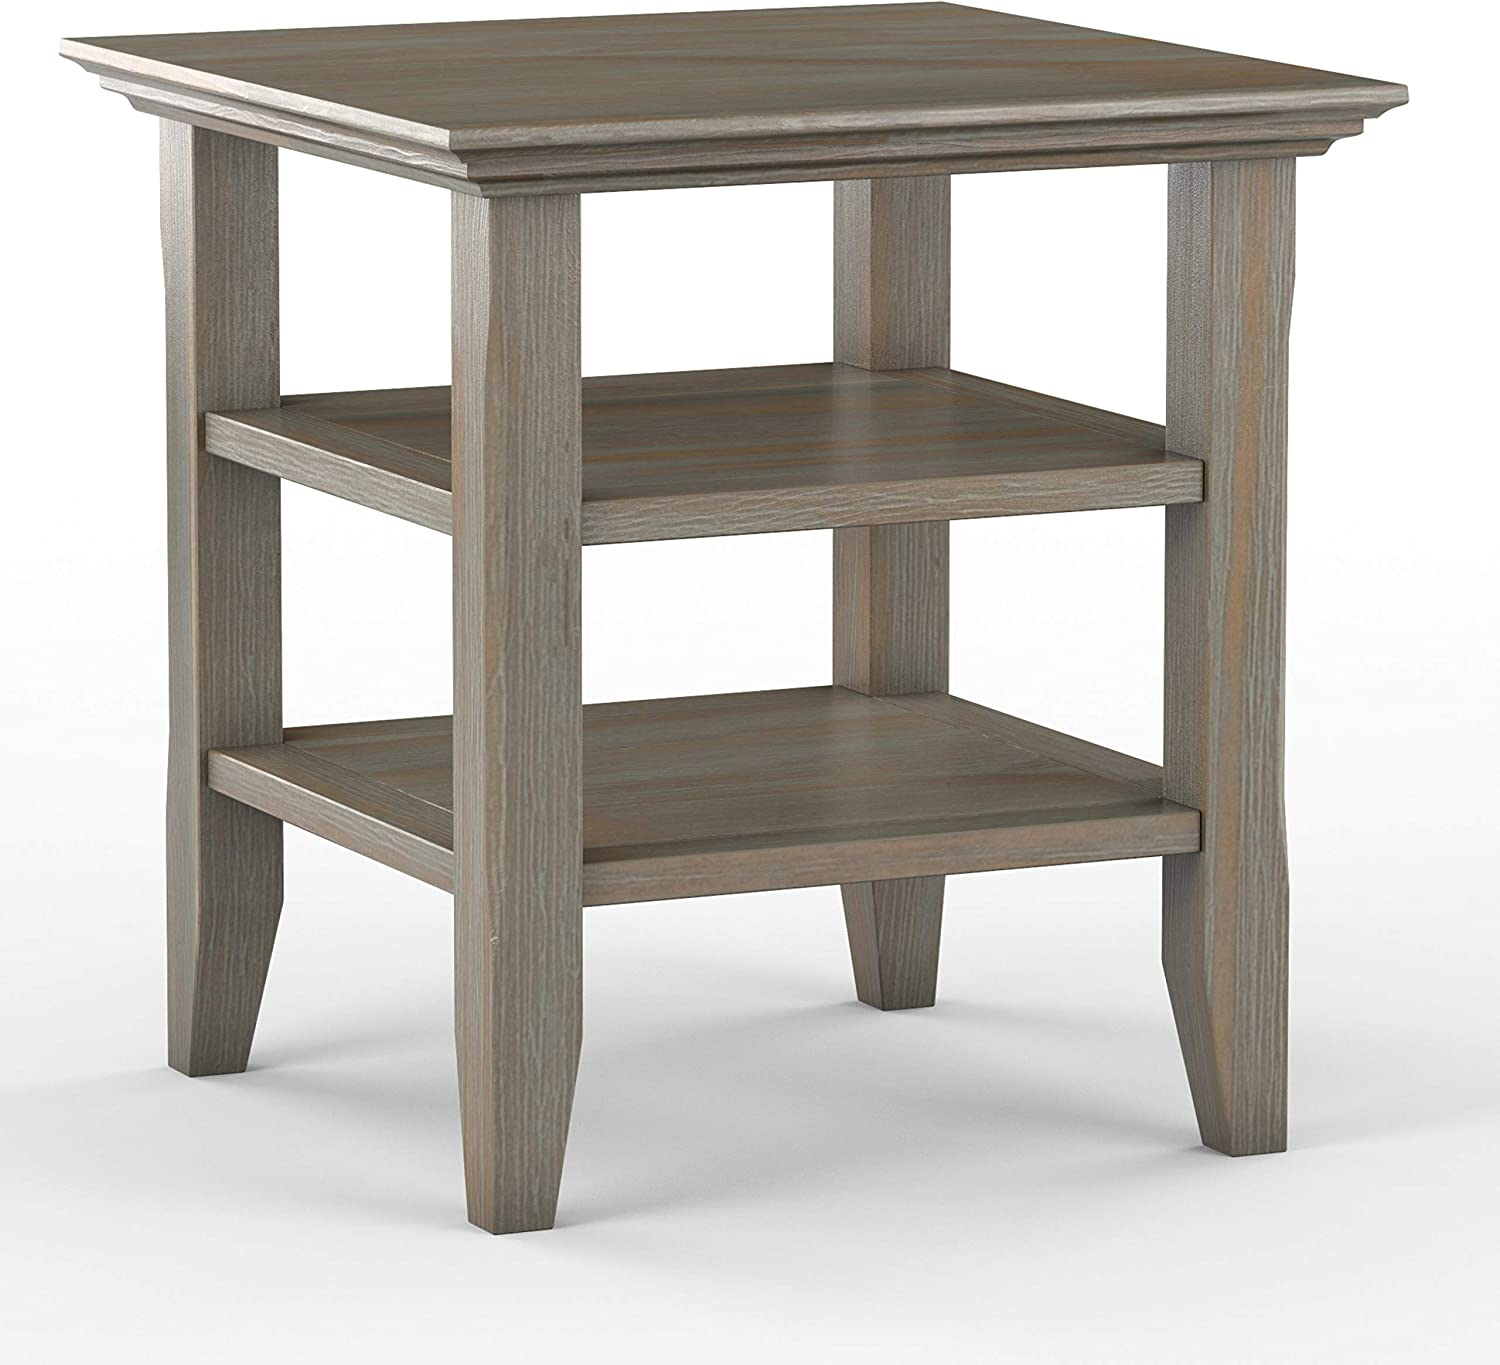 SIMPLIHOME Acadian SOLID WOOD 19 inch wide Square Rustic Contemporary End Side Table in Distressed Grey with Storage, 2 Shelves, for the Living Room and Bedroom